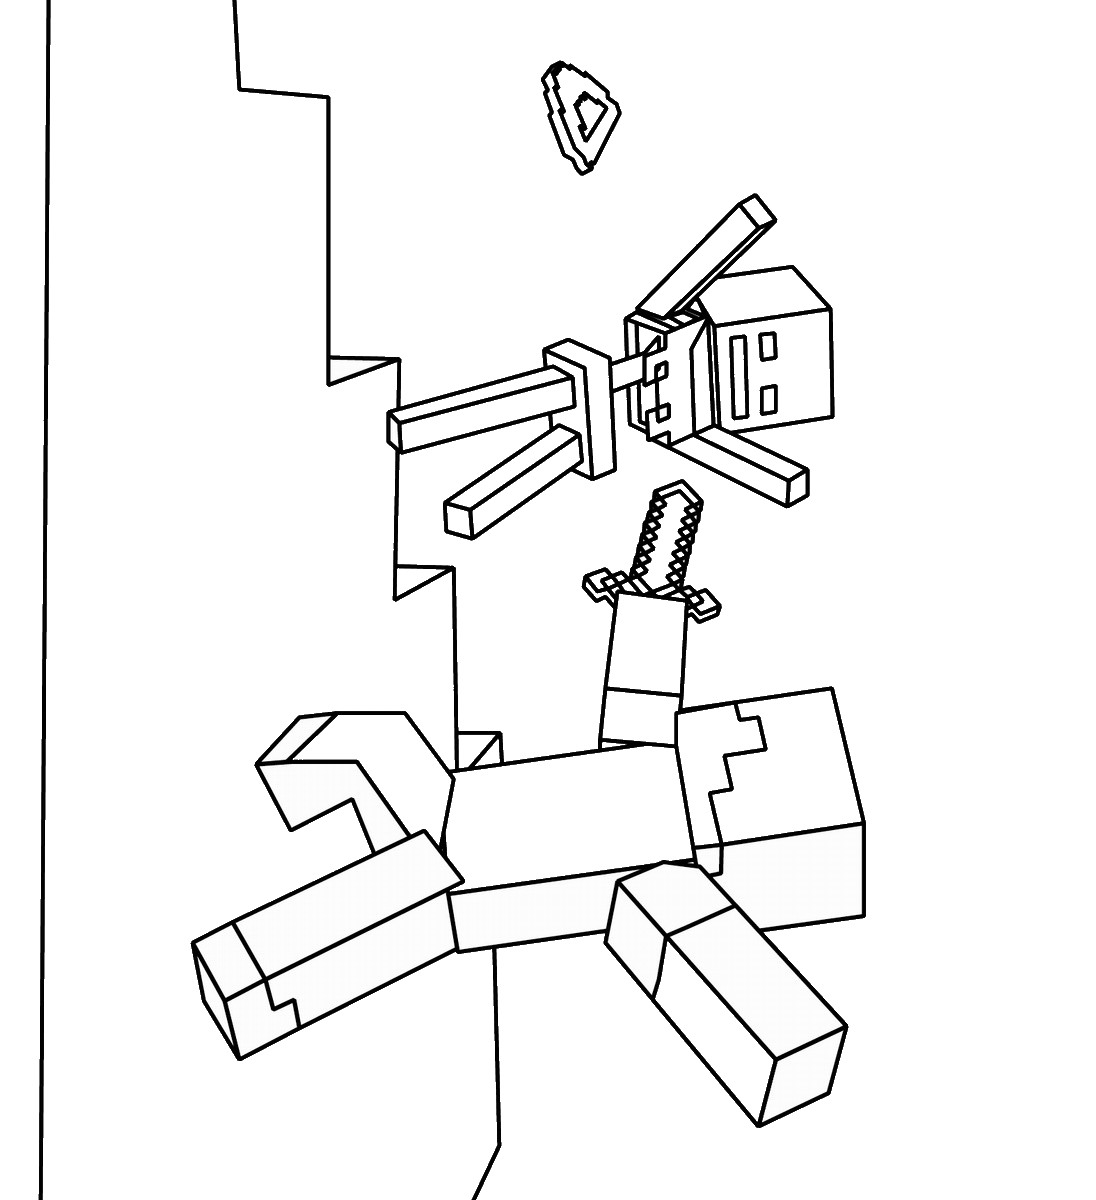 minecraft coloring to print minecraft coloring to print minecraft to print coloring